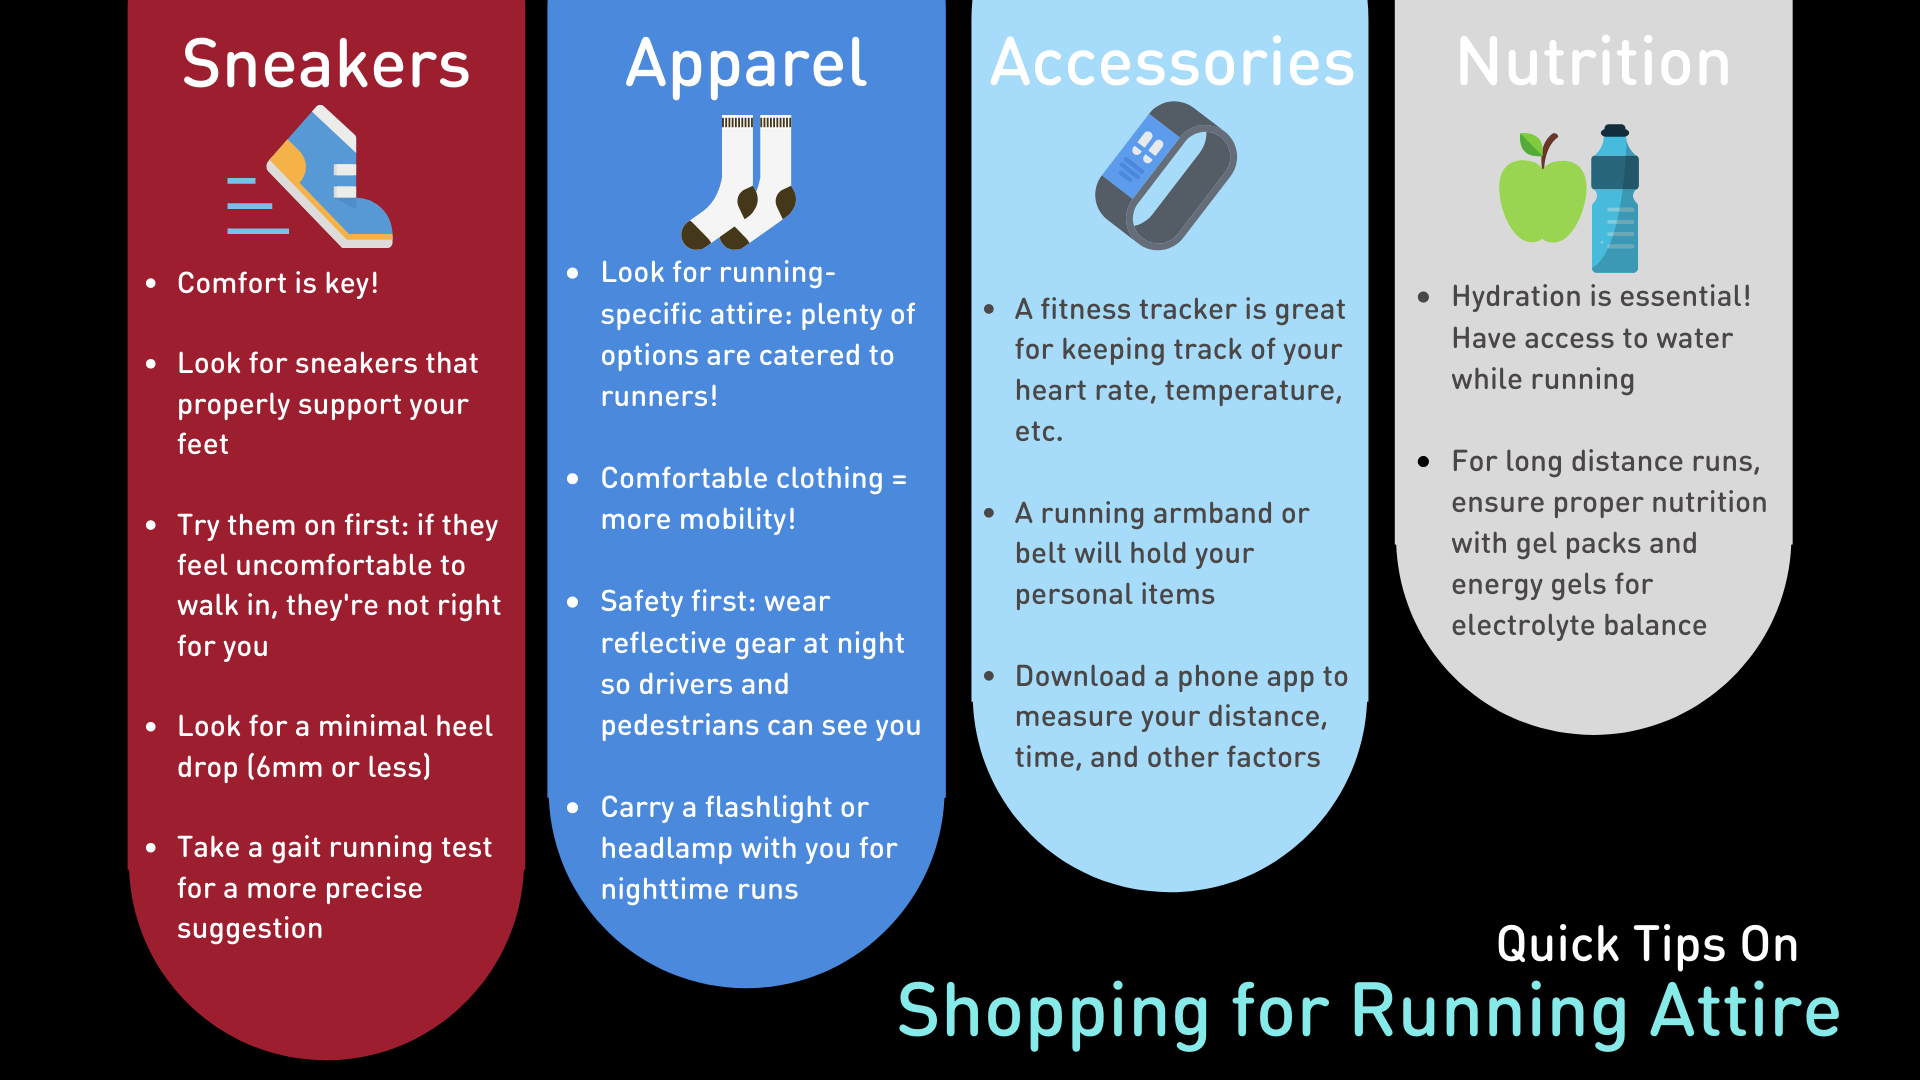 A shopping guide for runners